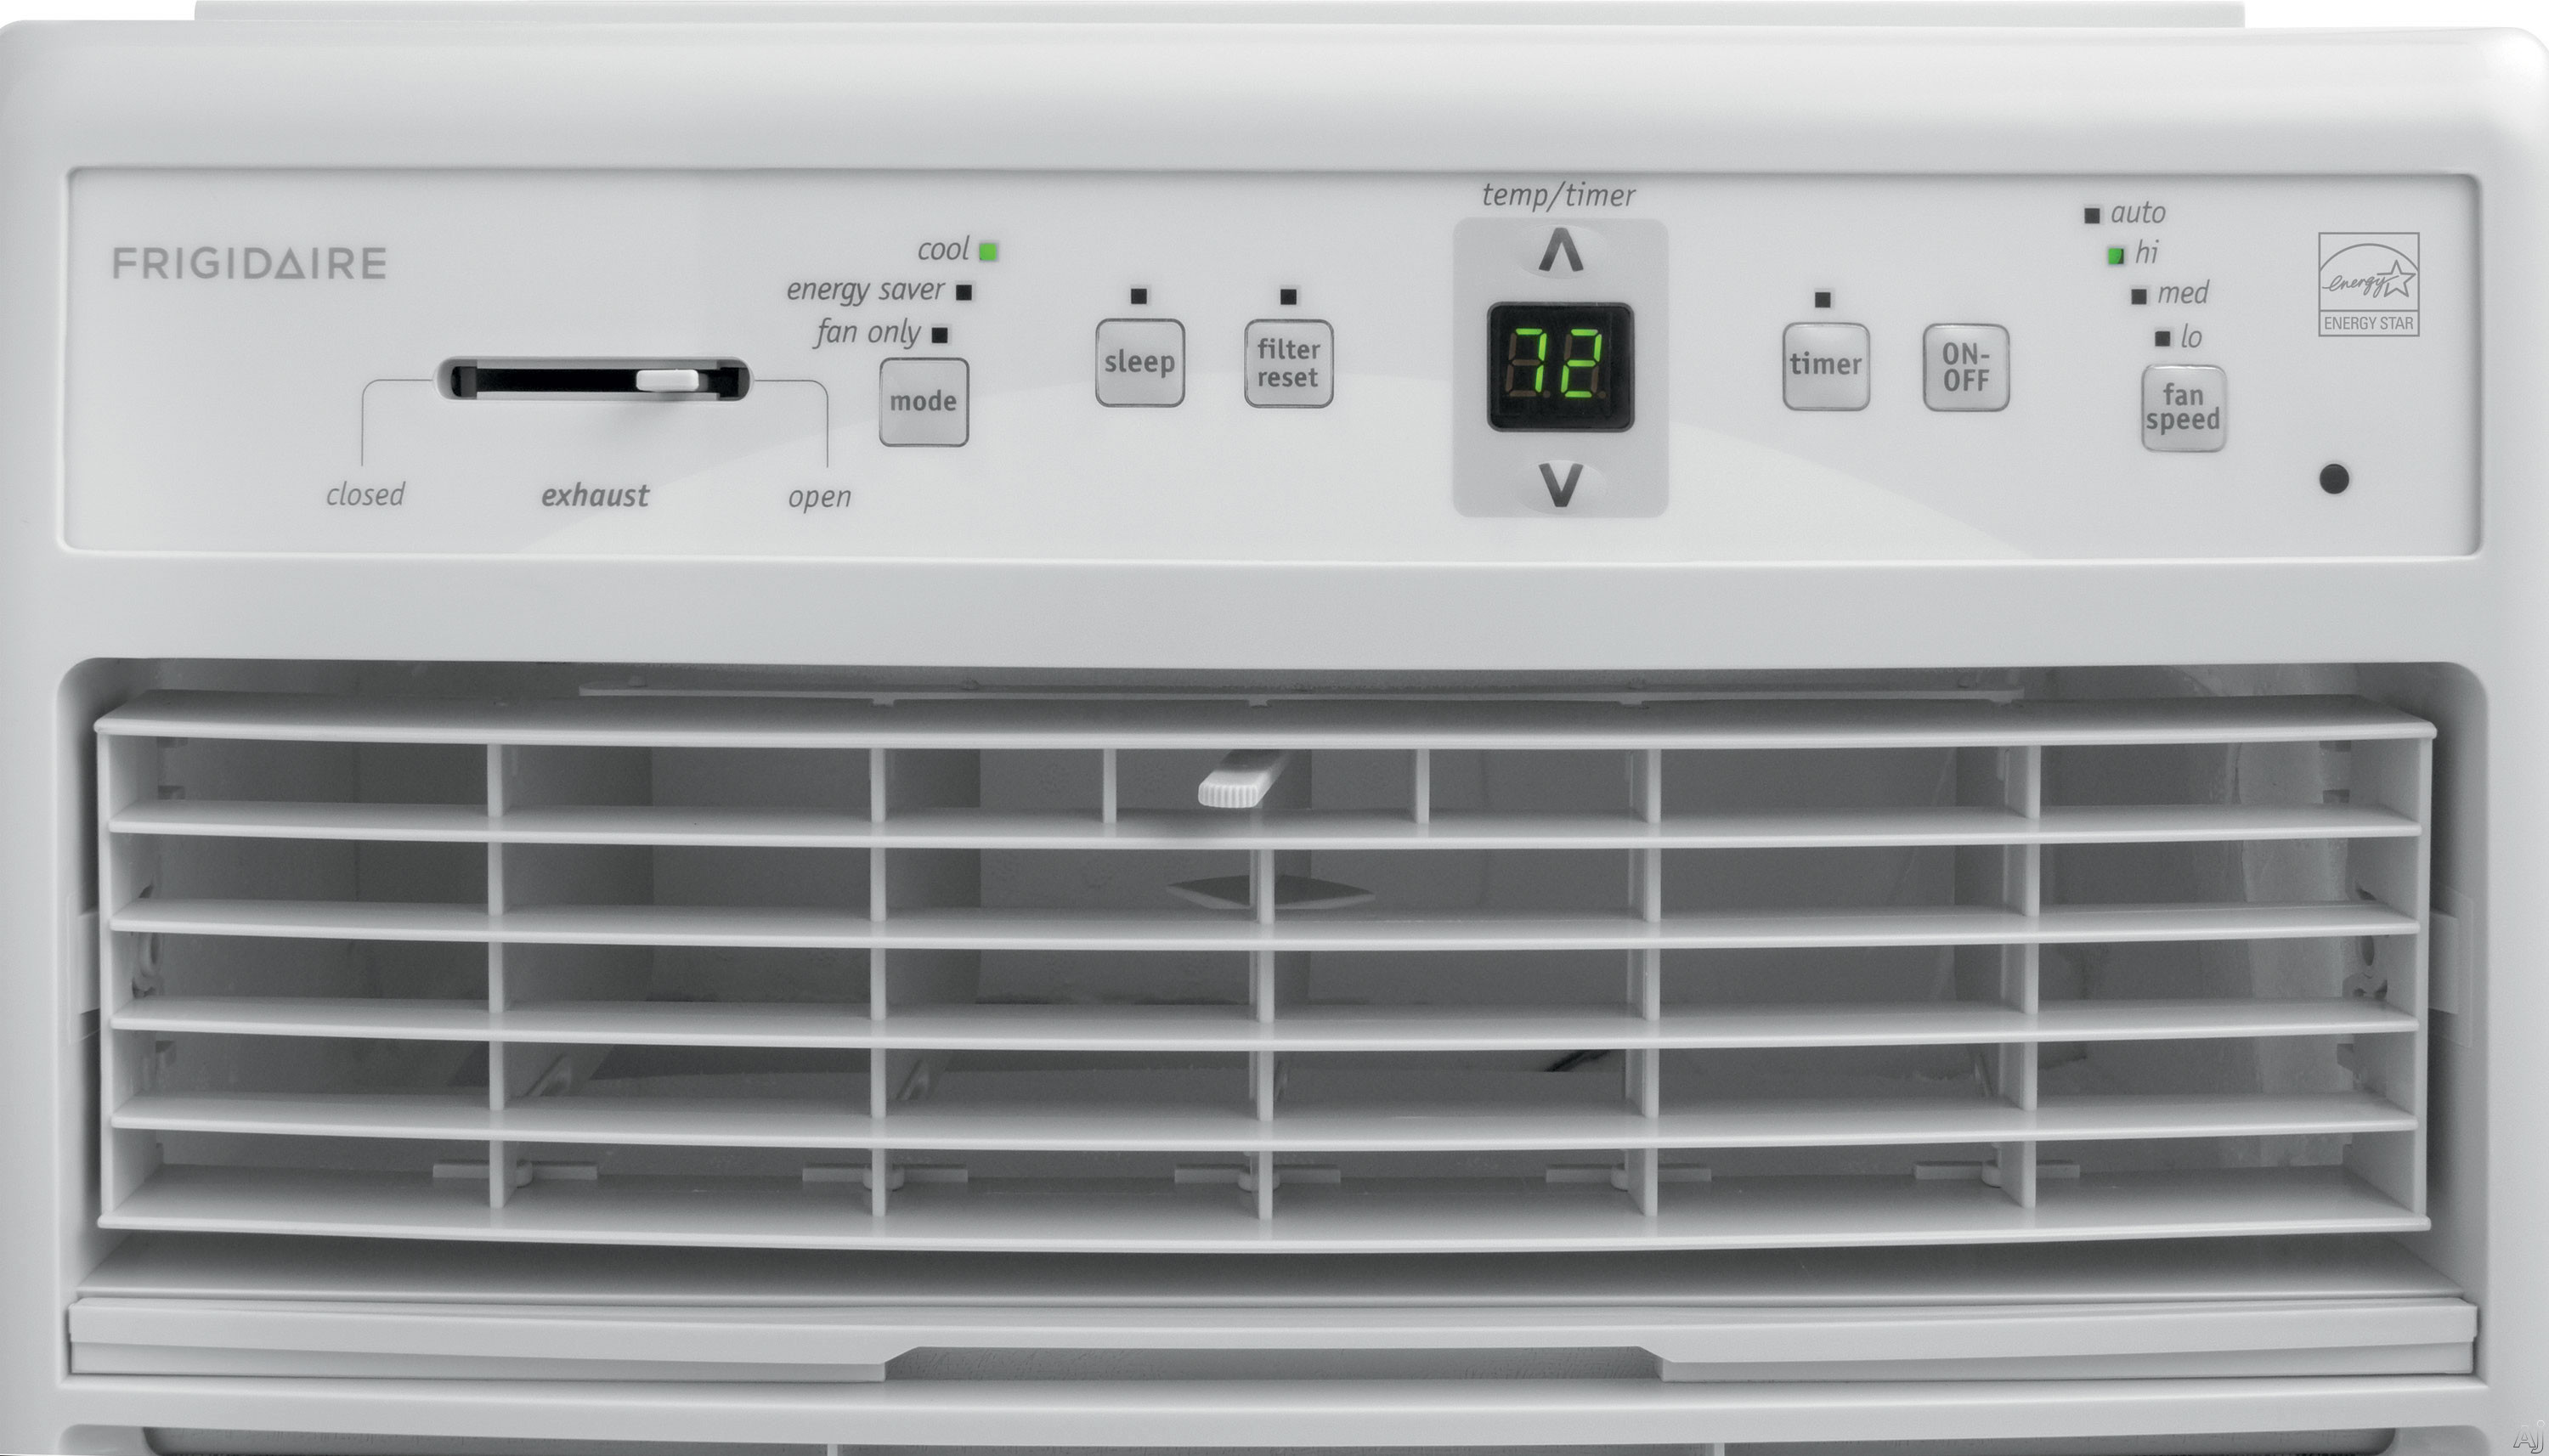 Home > Air Conditioners > Room Air Conditioners > FFRS0833Q1 #5F9238